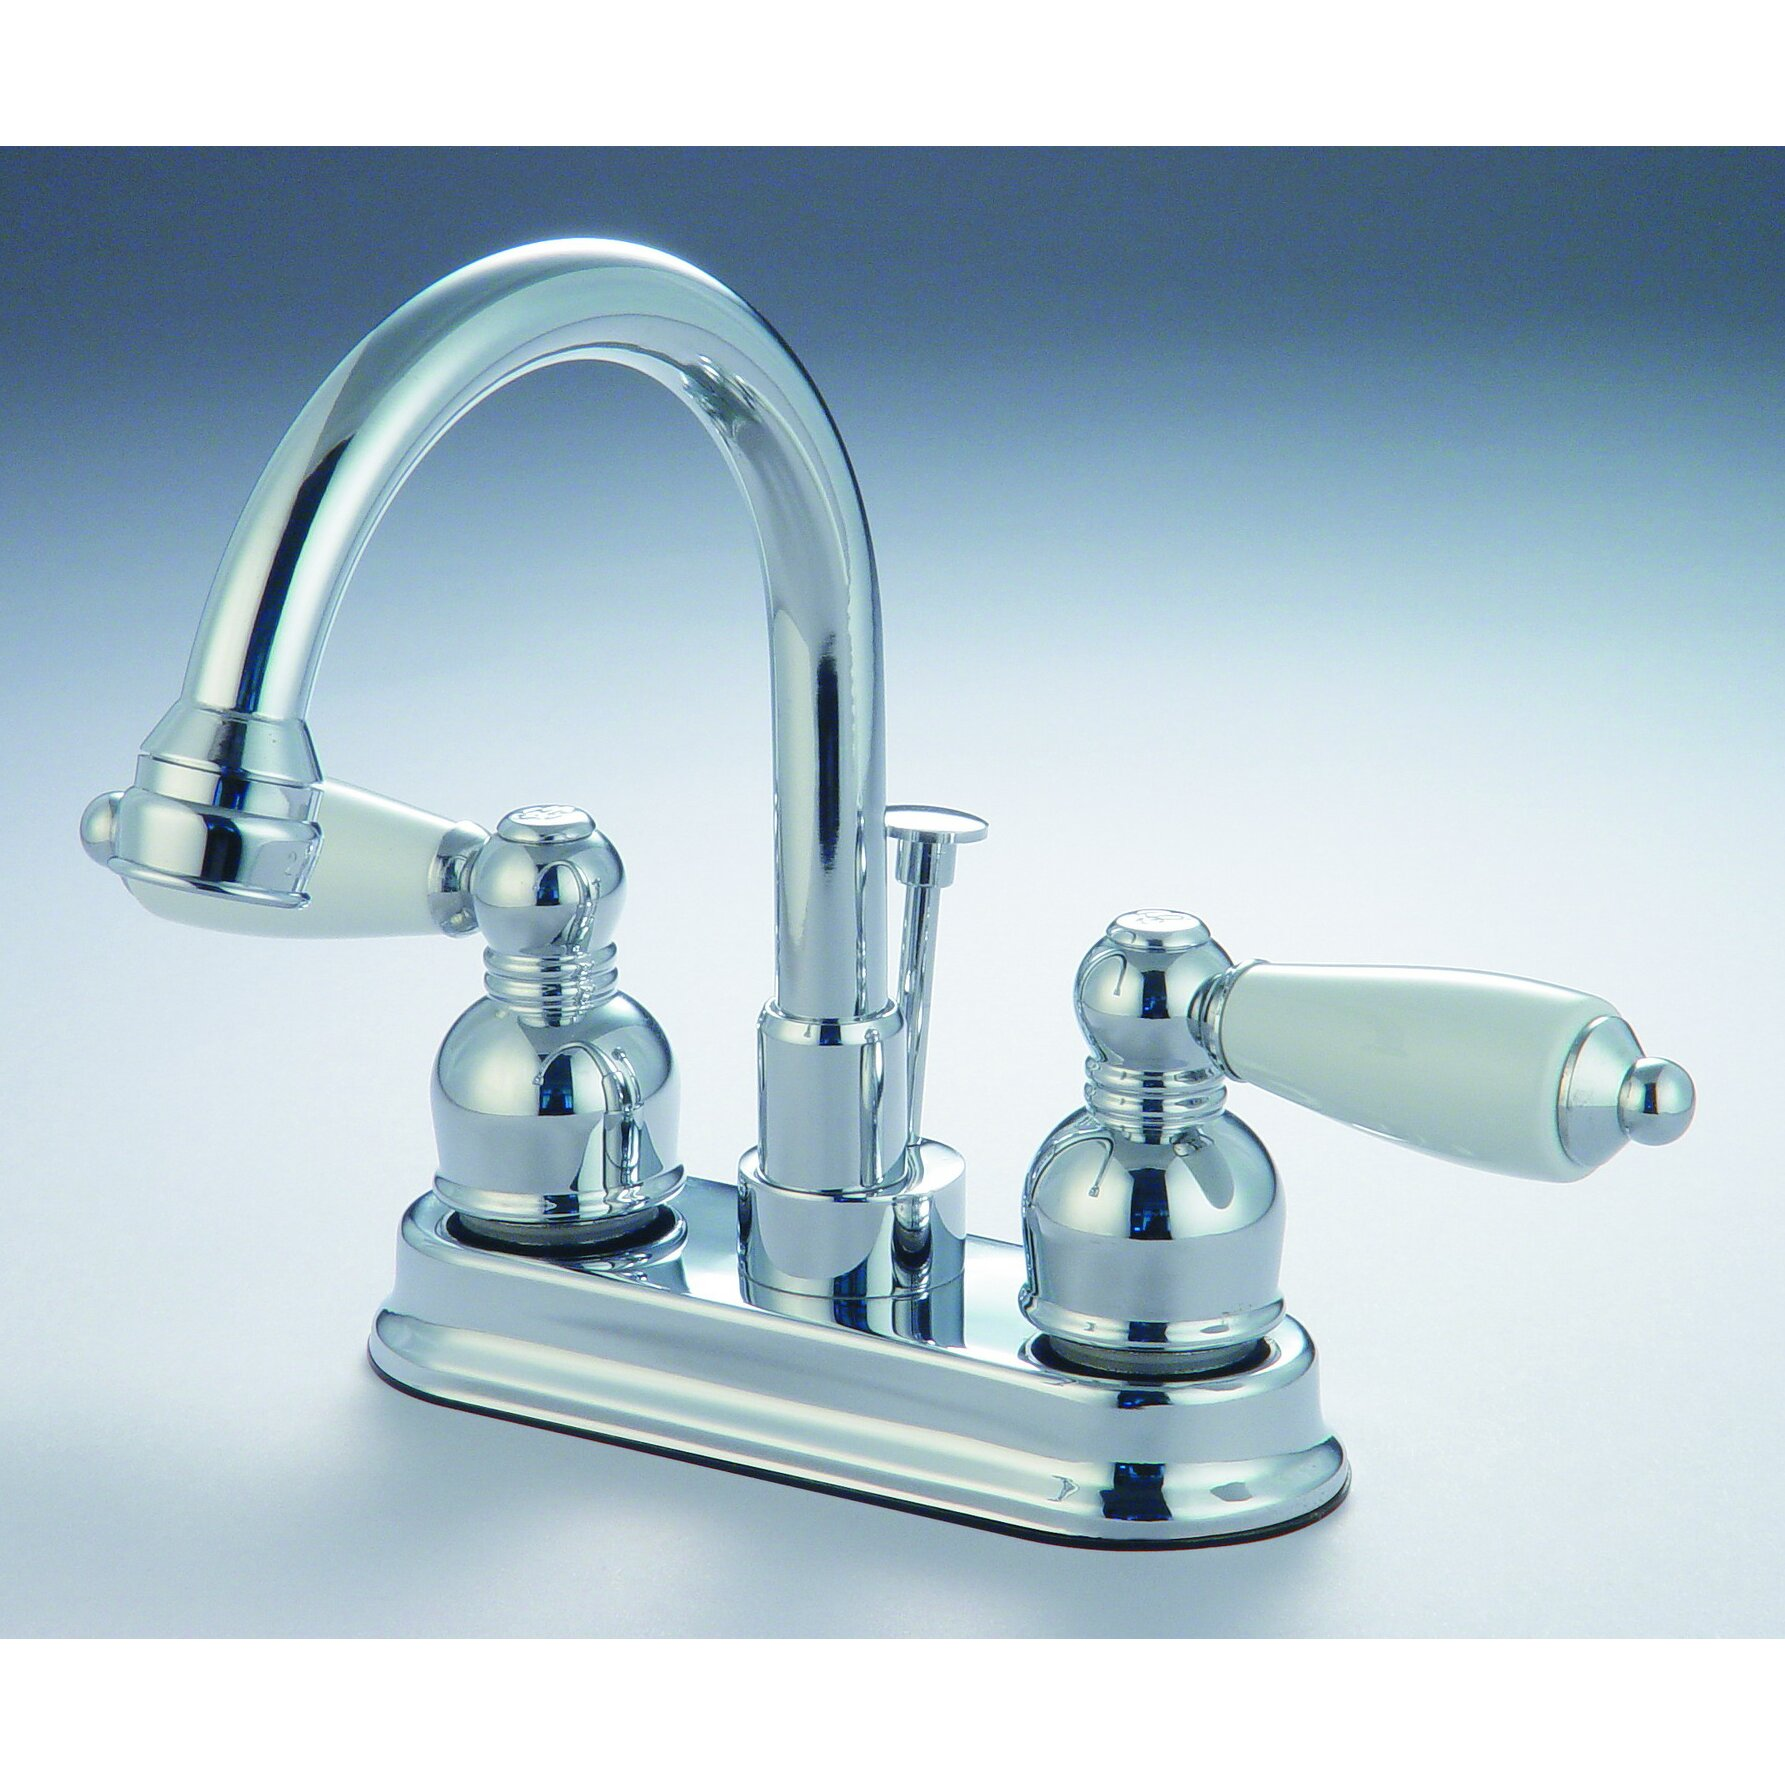 Modern Standard Faucet Illustration - Faucet Collections ...